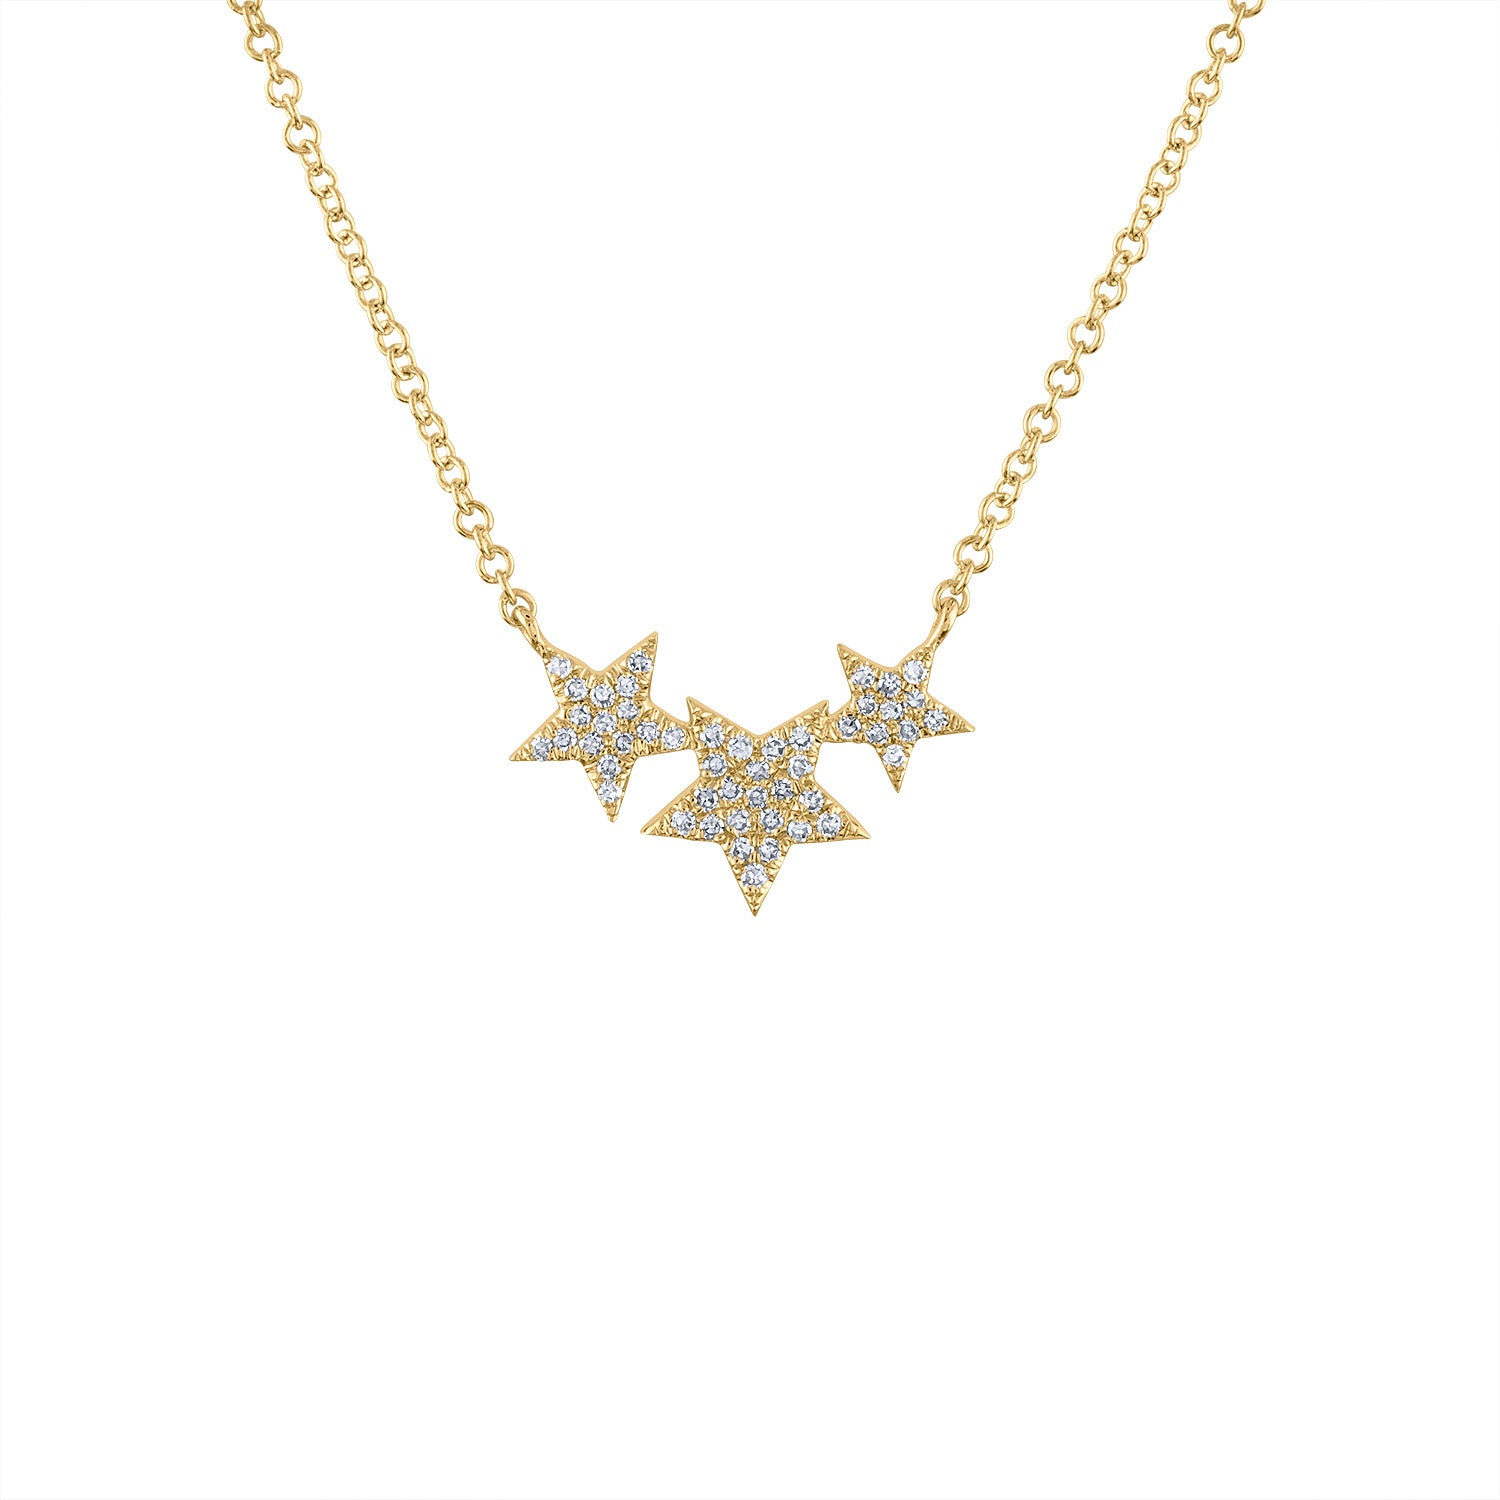 14KT GOLD DIAMOND THREE STAR NECKLACE